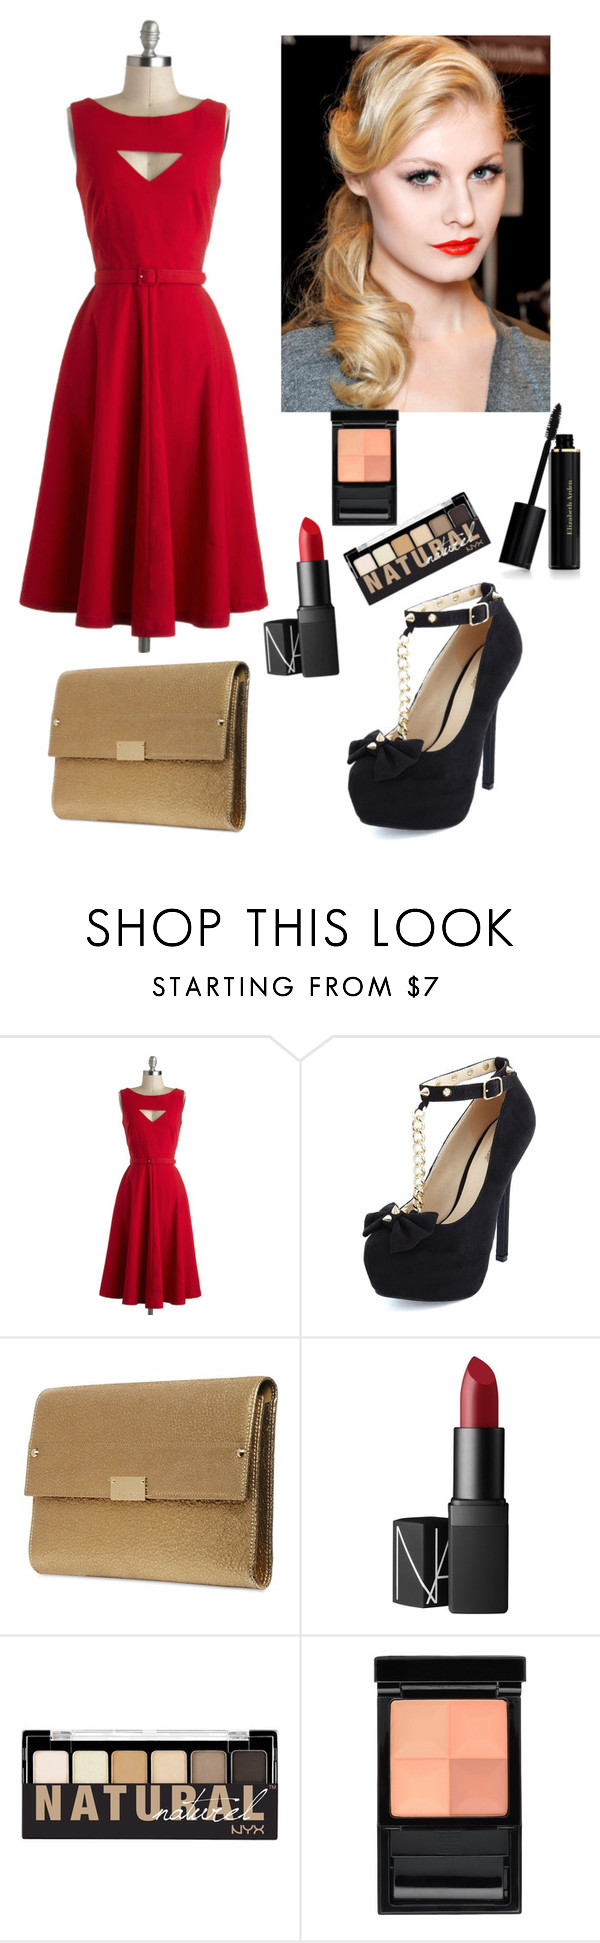 """You've Got the Love"" by megschritt ❤ liked on Polyvore featuring Bettie Page, Charlotte Russe, Jimmy Choo, Retrò, NARS Cosmetics, NYX, Givenchy and Elizabeth Arden"